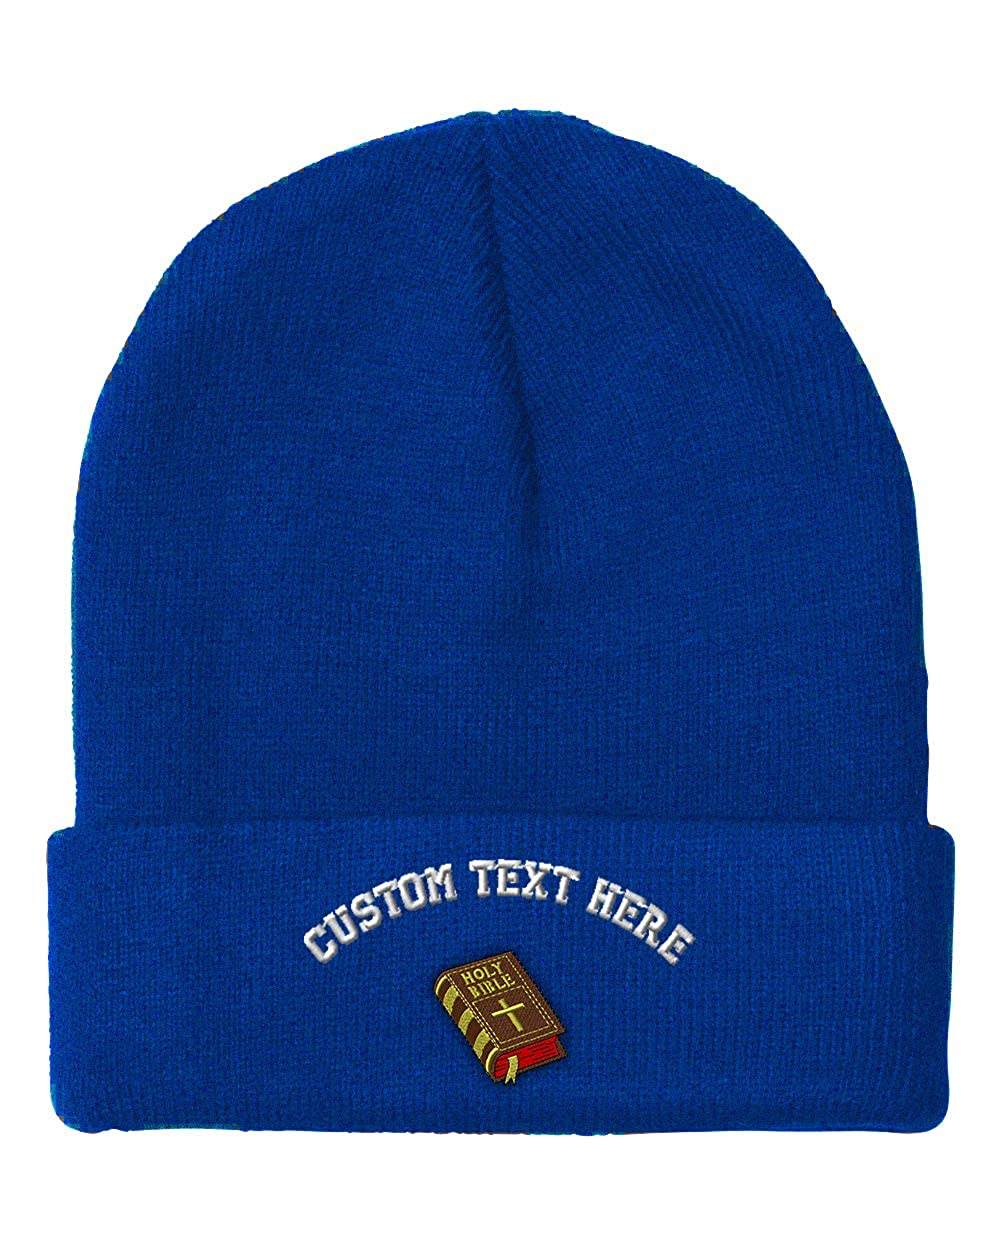 Custom Text Embroidered Holy Bible Style 2 Unisex Acrylic Beanie Skully Hat